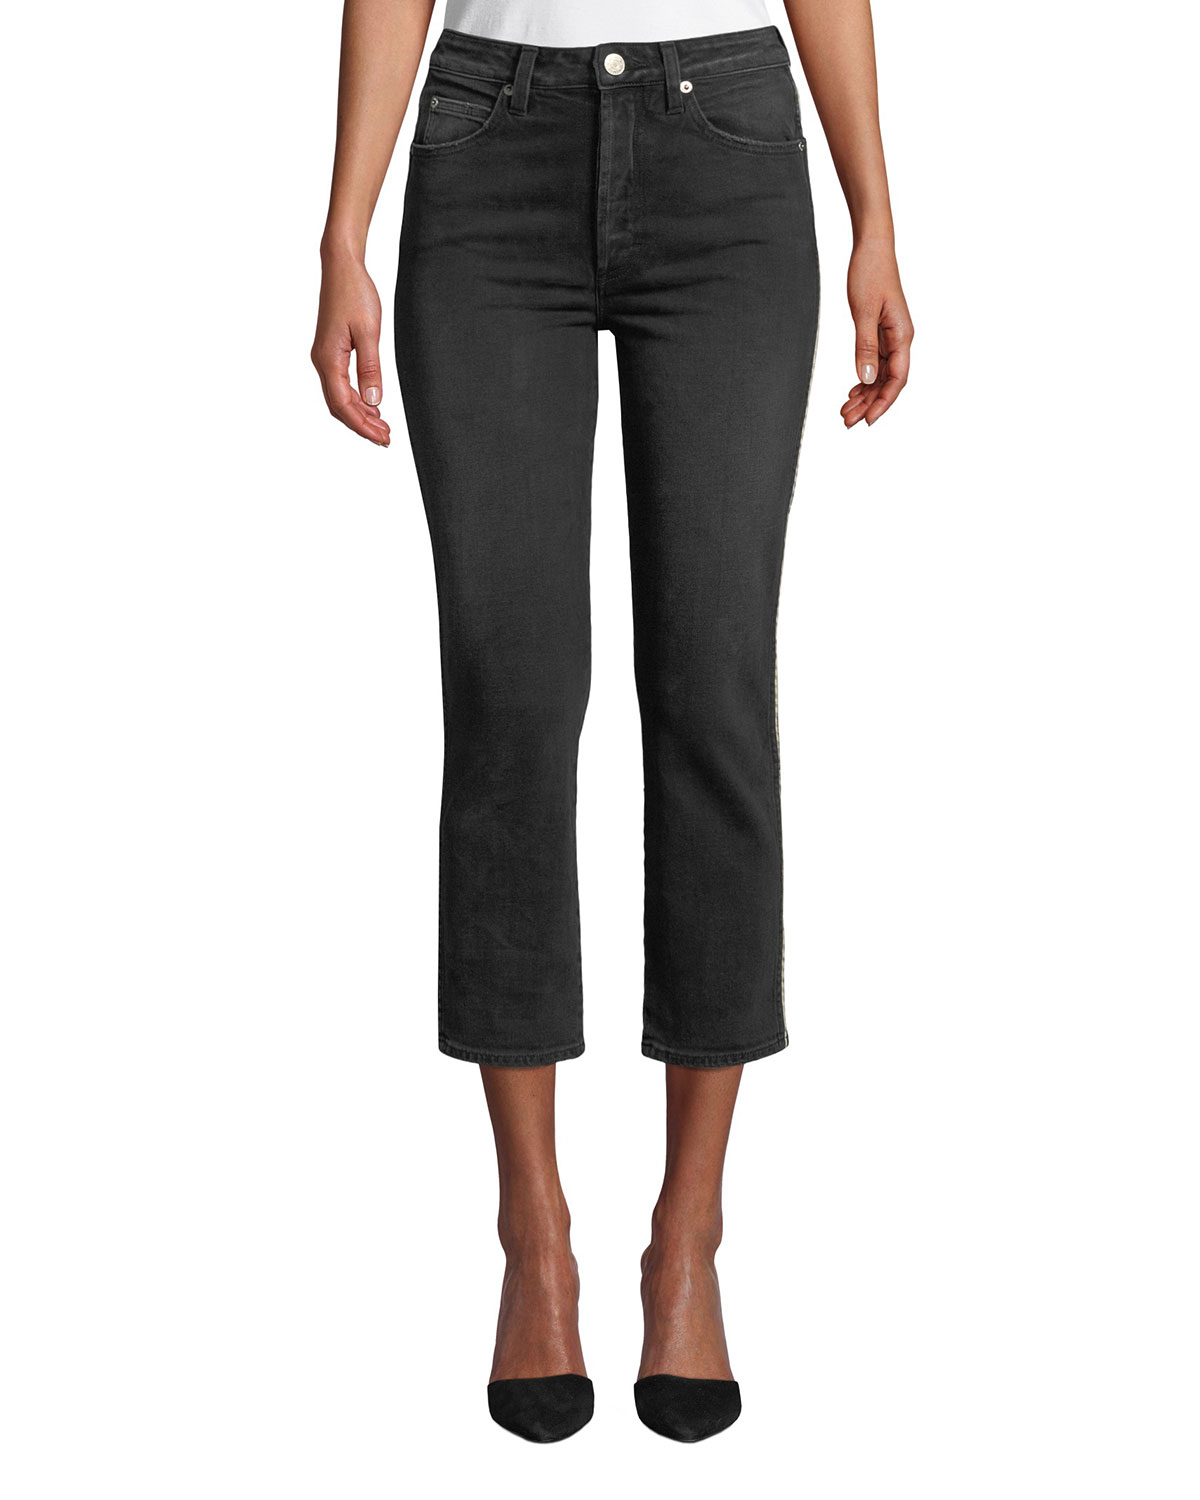 AMO DENIM Chloe Cropped Straight-Leg Jeans With Piping in Black